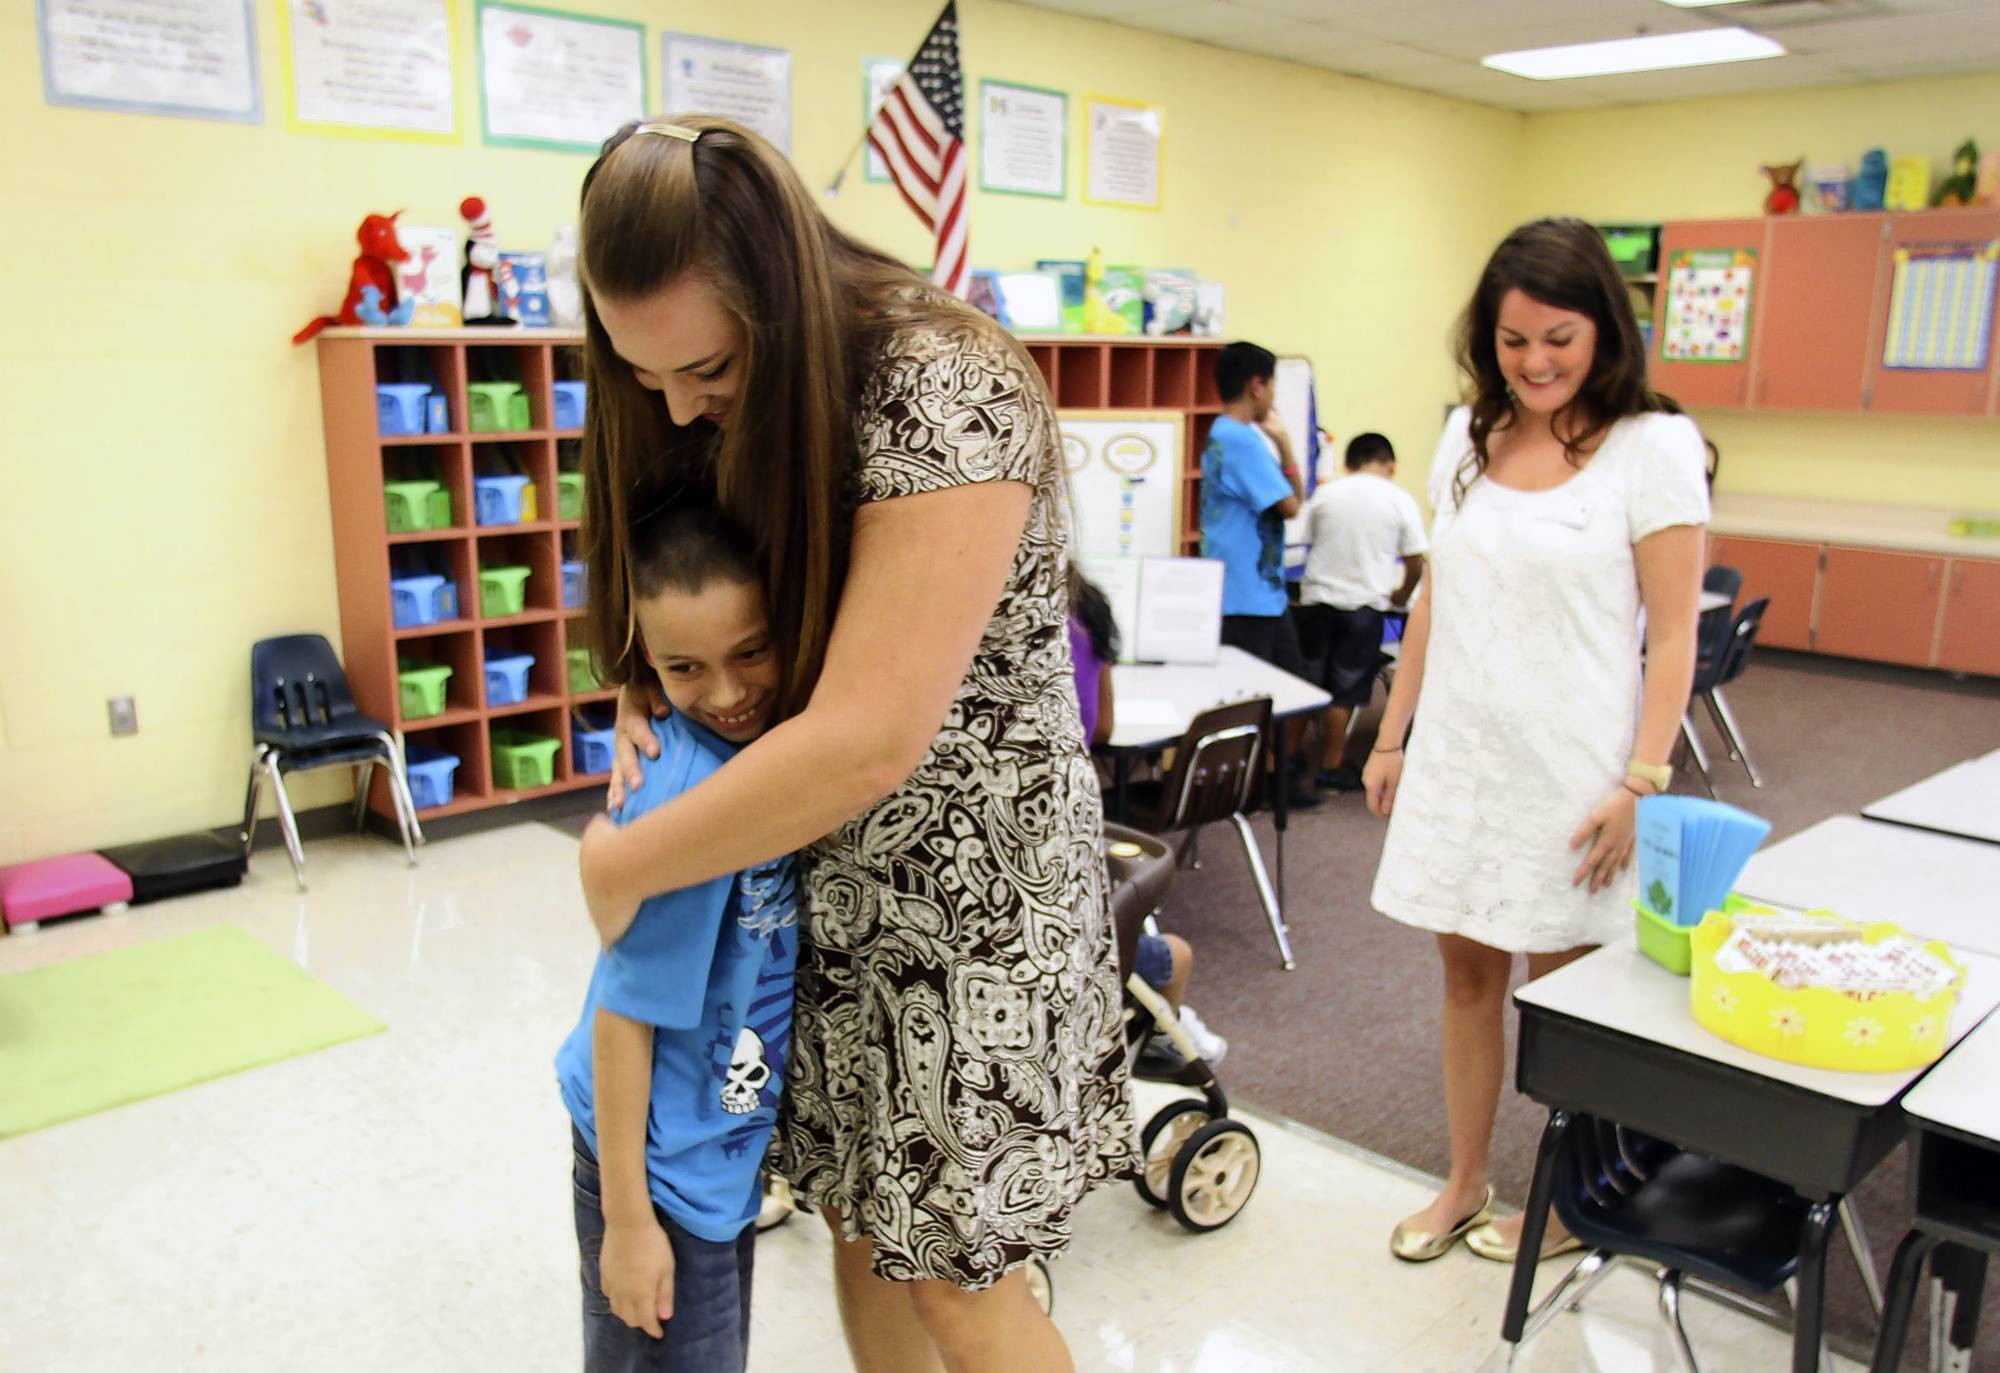 Kevin Penate, 10, gets a hug from his former first-grade teacher Kristina Gardner at Wicklow Elementary in Sanford. At right is UCF intern Sara Gagliardi.